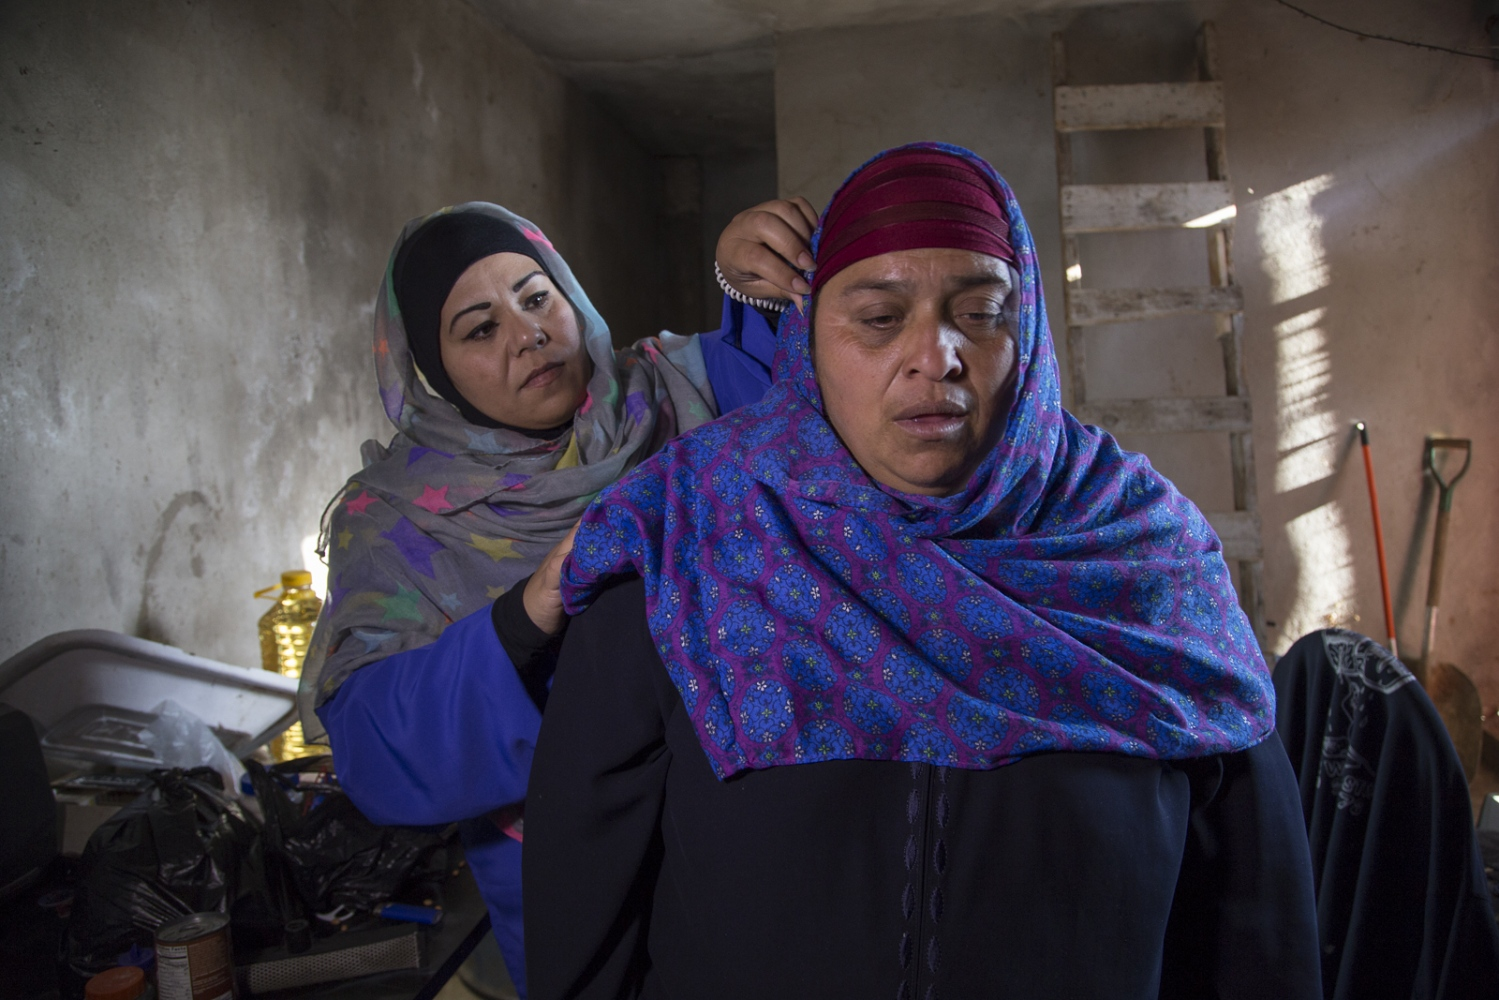 Fatima Castañeda helps Maria Luna fix her hijab at Maria's humble house. Maria Luna and her 8 year-old son Israel share a bed in a cold dark room next to a stable in Rosarito, Mexico. Luna wakes up at 5am every day to feed the horses and clean the horse manure. In exchange for her work, they pay her 200 pesos (approximately 12 USD) and let her and her son stay in the room. Maria converted to Islam only 2 months ago, which represents a very small percentage of the community in Mexico.